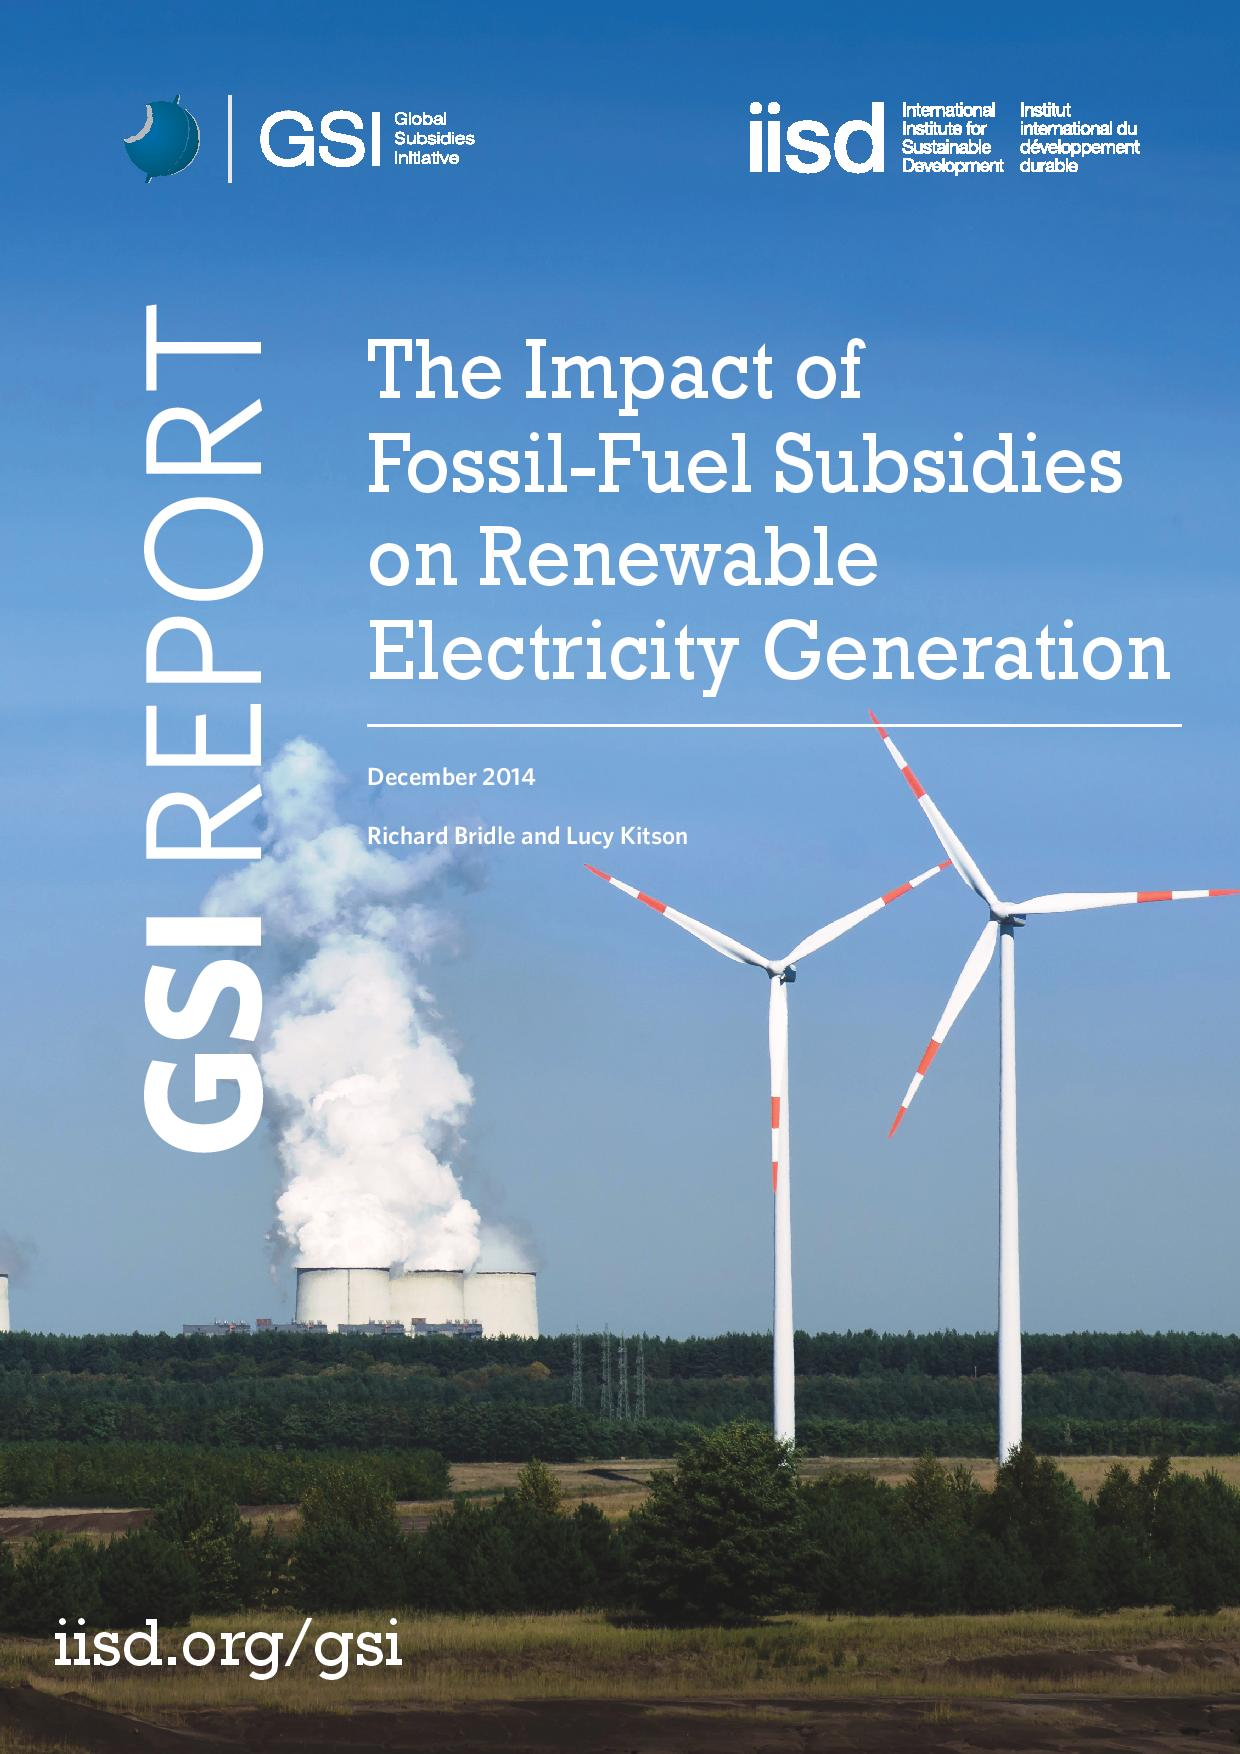 The Impact of Fossil Fuel Subsi s on Renewable Electricity